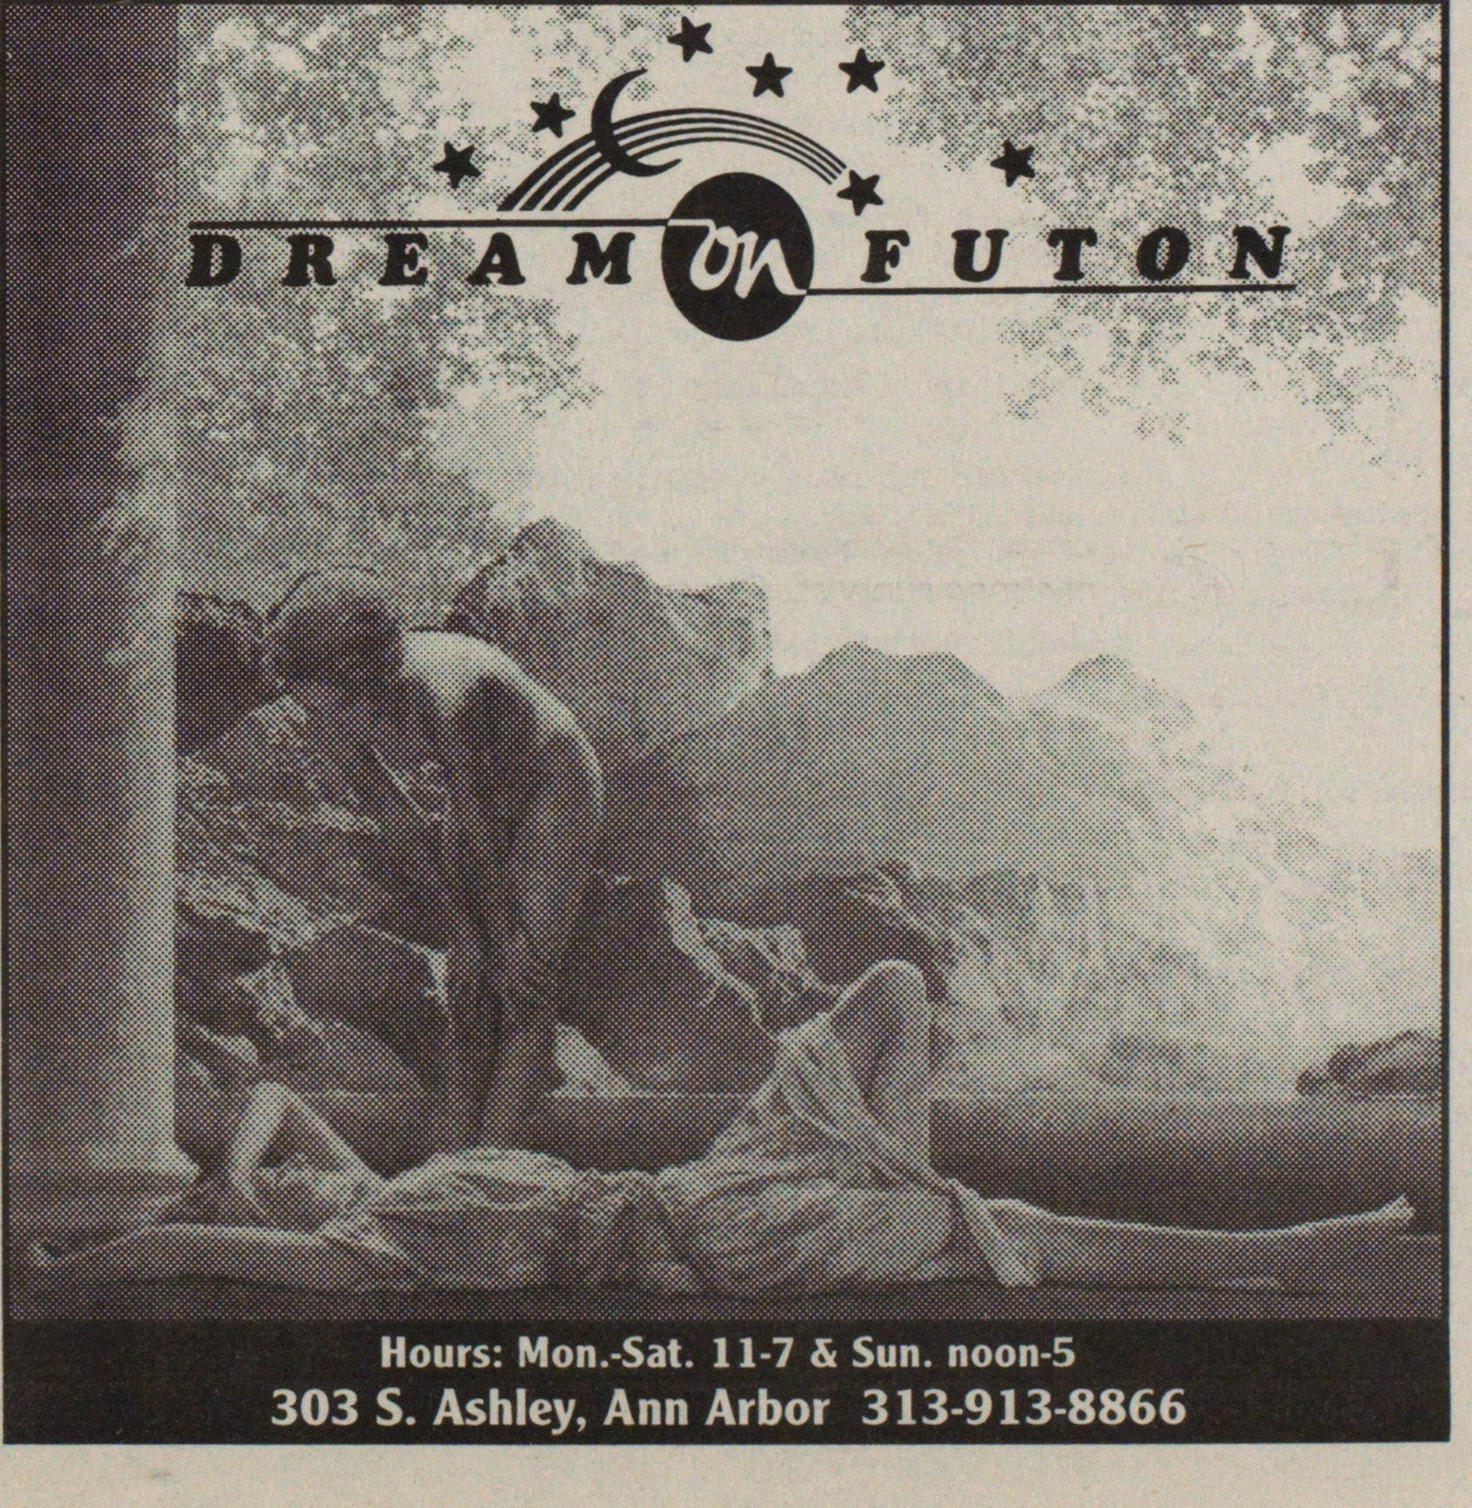 Dream On Futon image